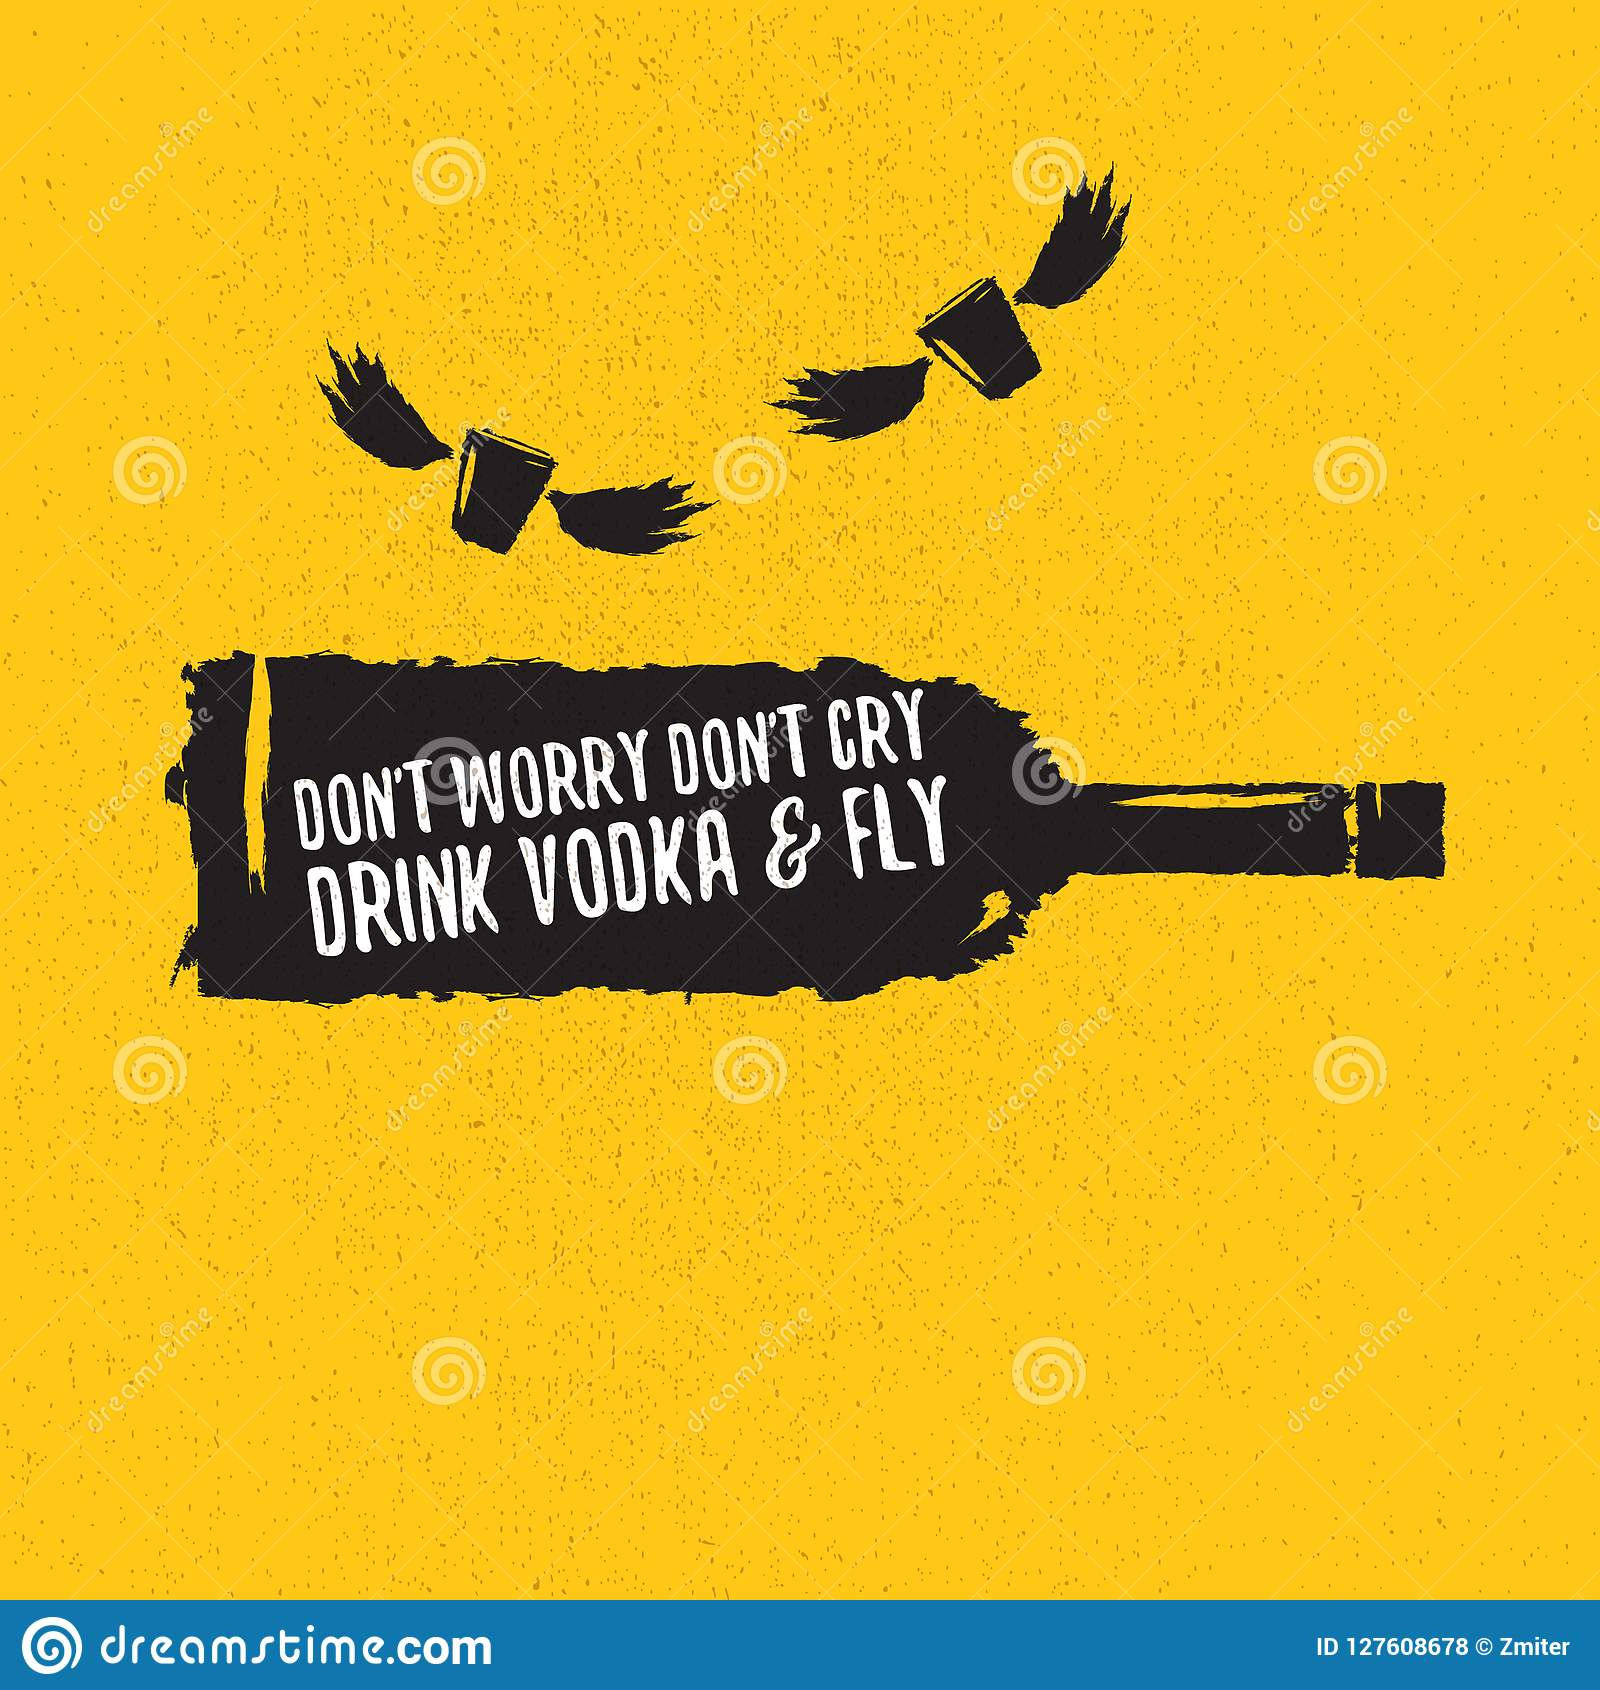 dont worry dont cry drink vodka and fly funny quotes about vodka with glass bottle for print on tee or poster